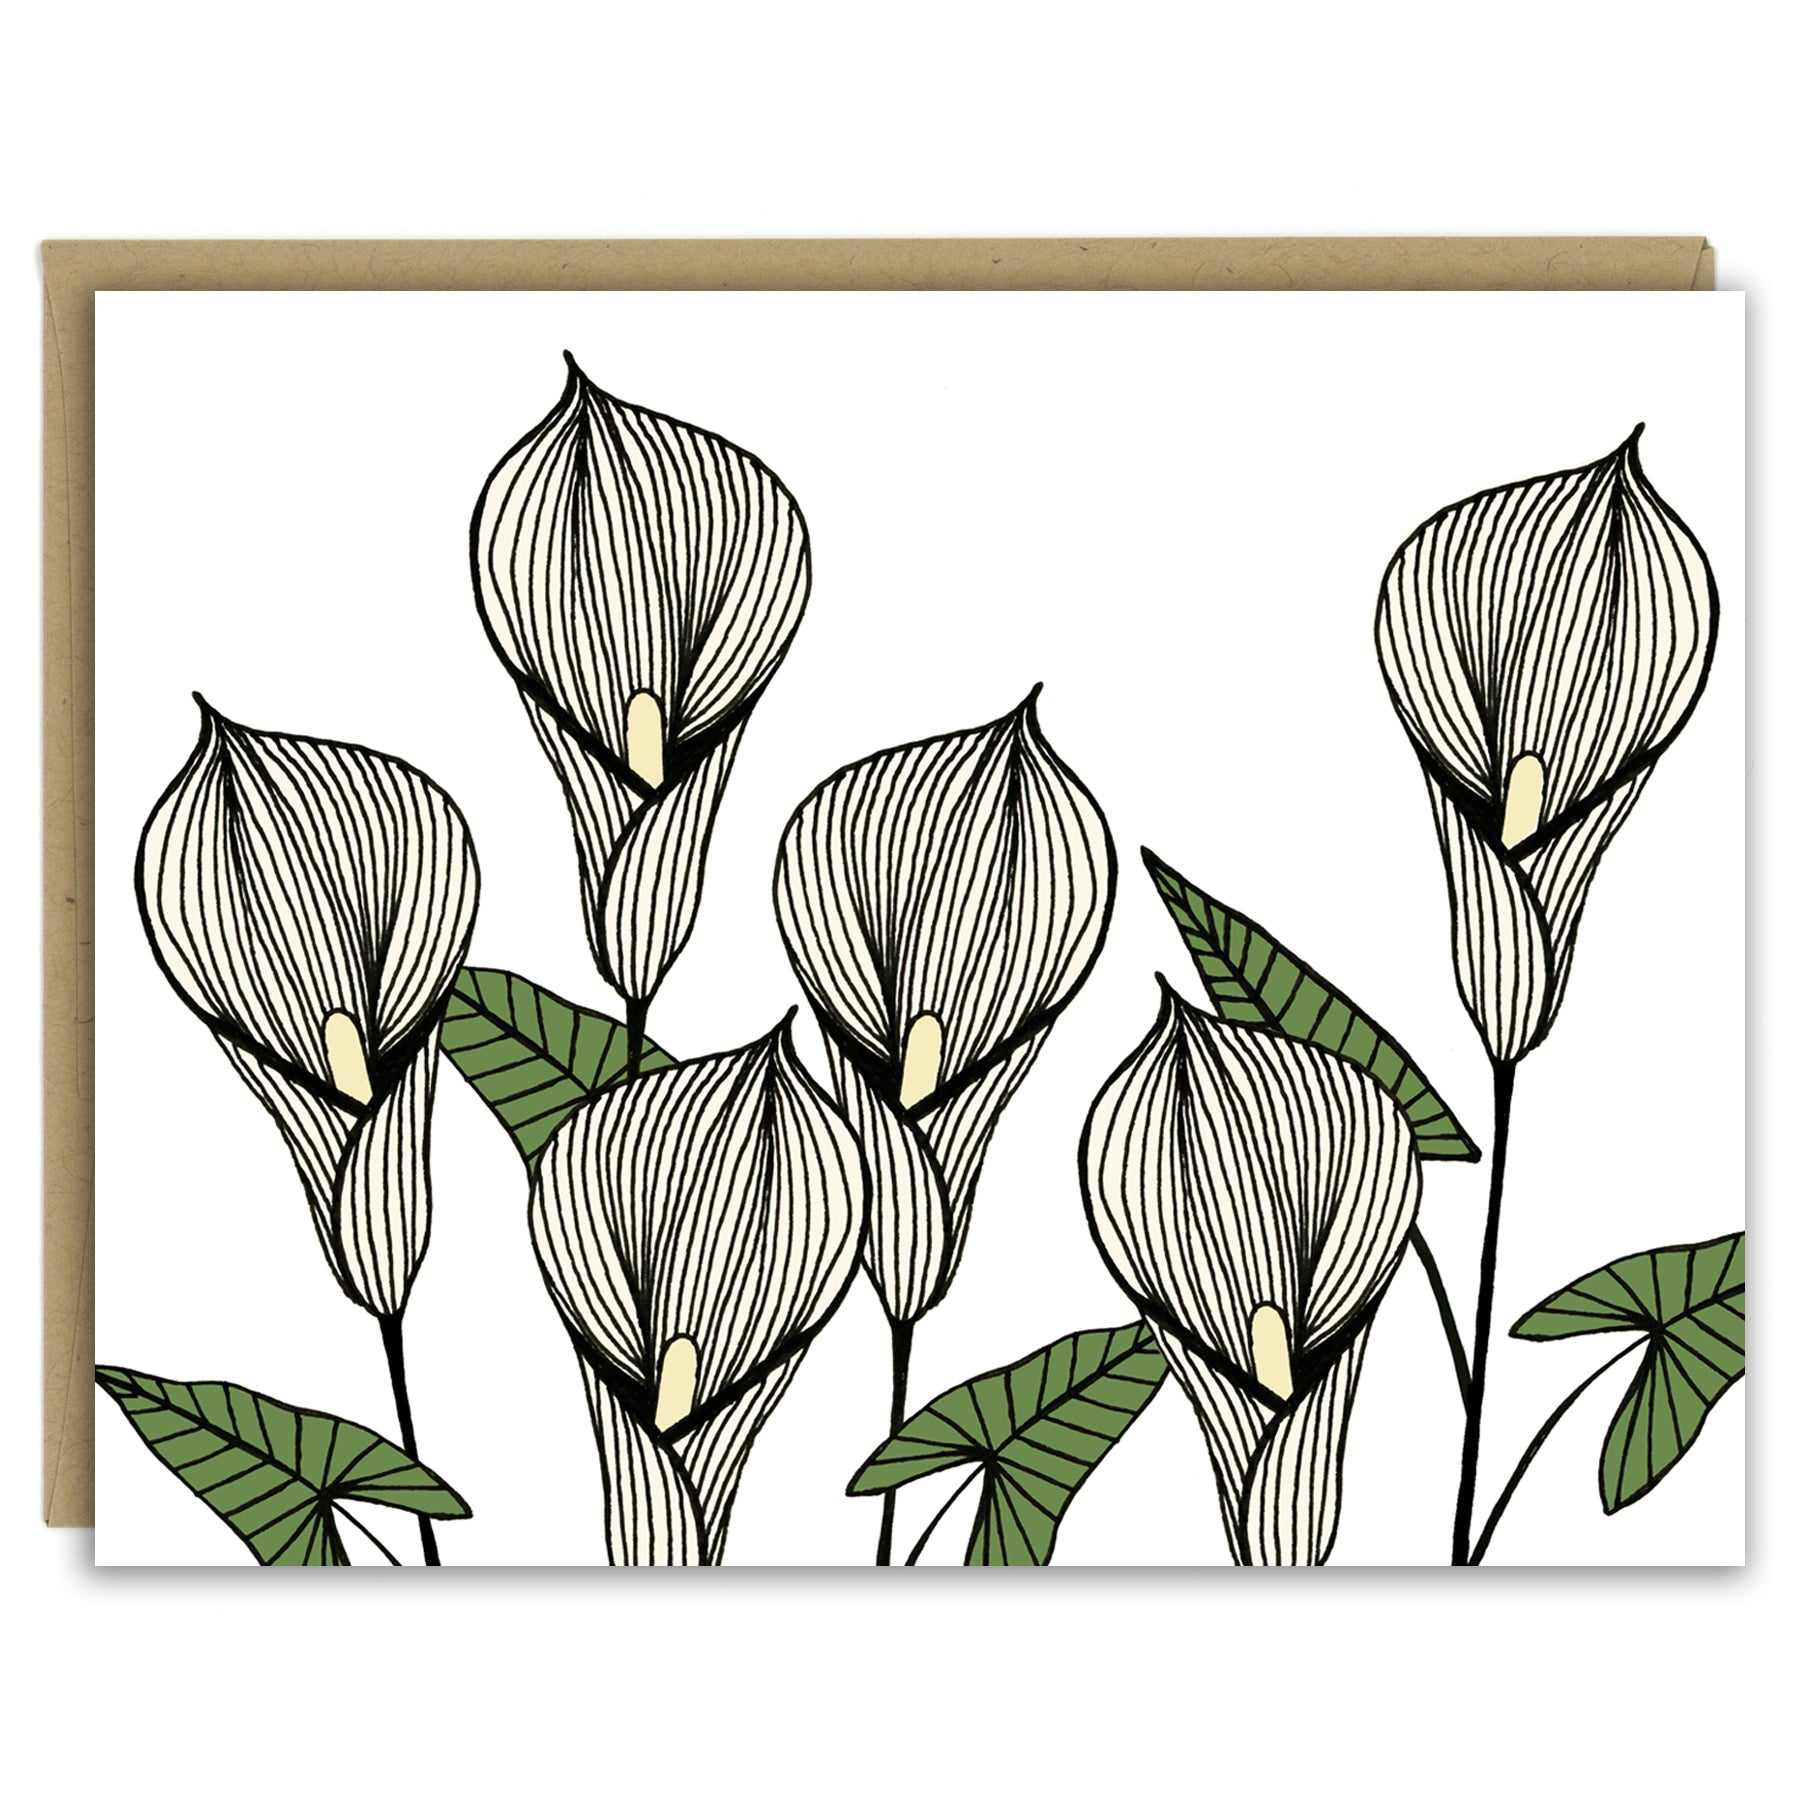 A greeting card with a hand-drawn ink illustration of six pale yellow calla lilies. Shown with a Kraft paper envelope on a white background.